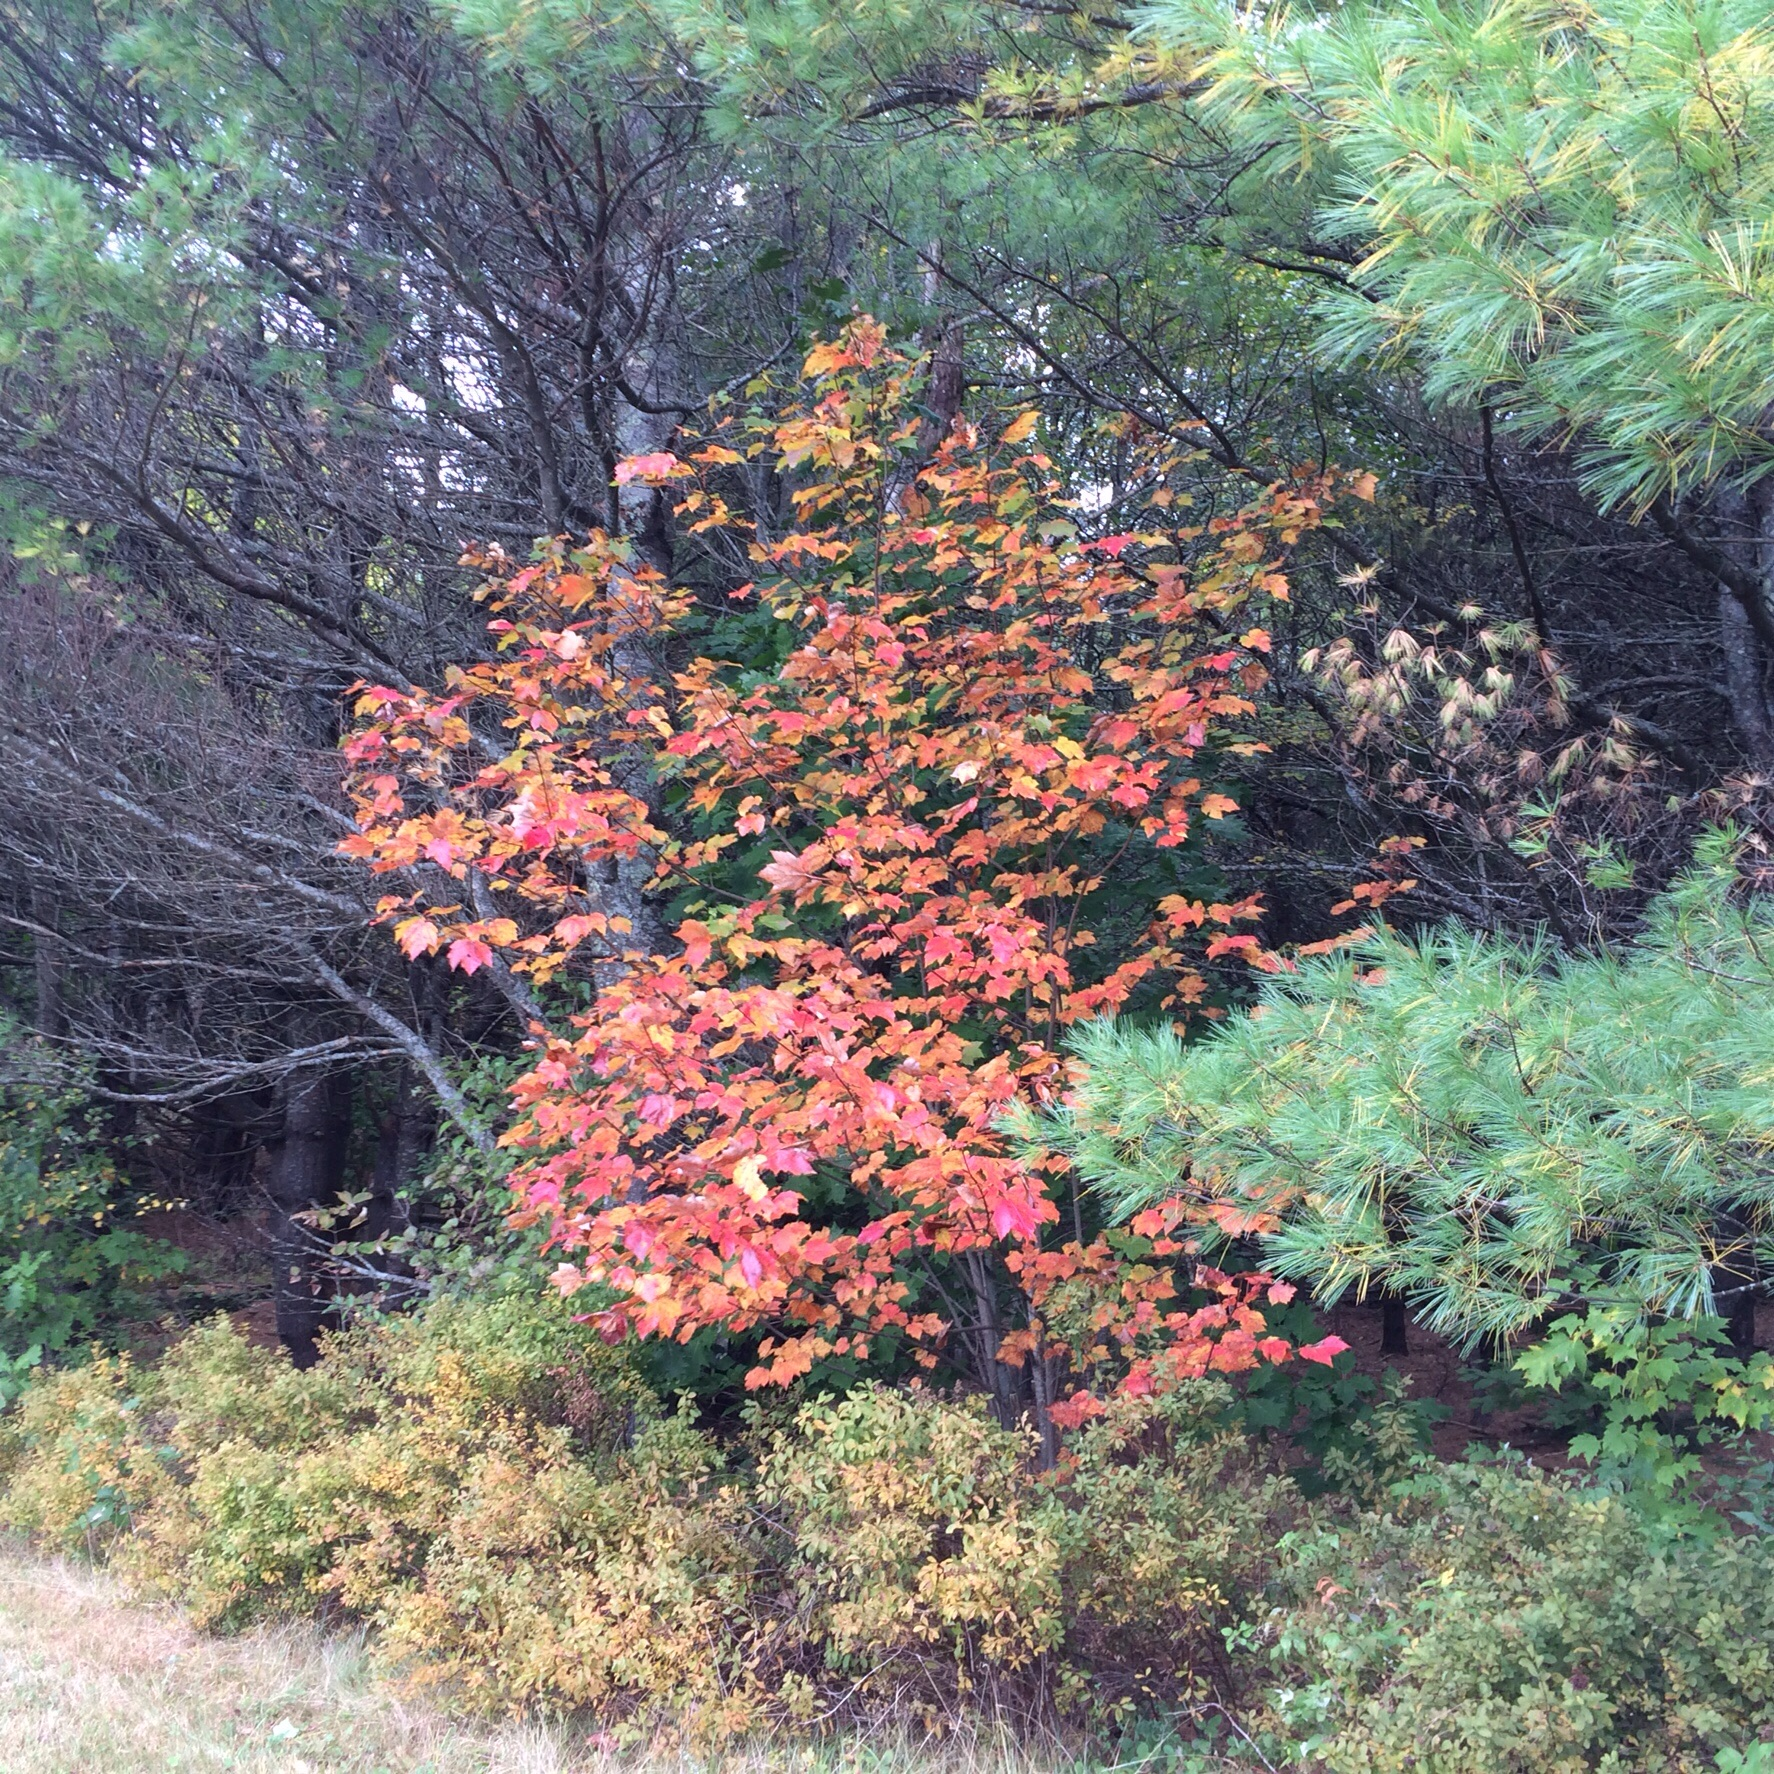 Fall color tucked into the wall of pines along the edge of our eastern field. We enter our second autumn here at Ridge Pond still astounded at the beauty of this place and our luck in getting to live here.